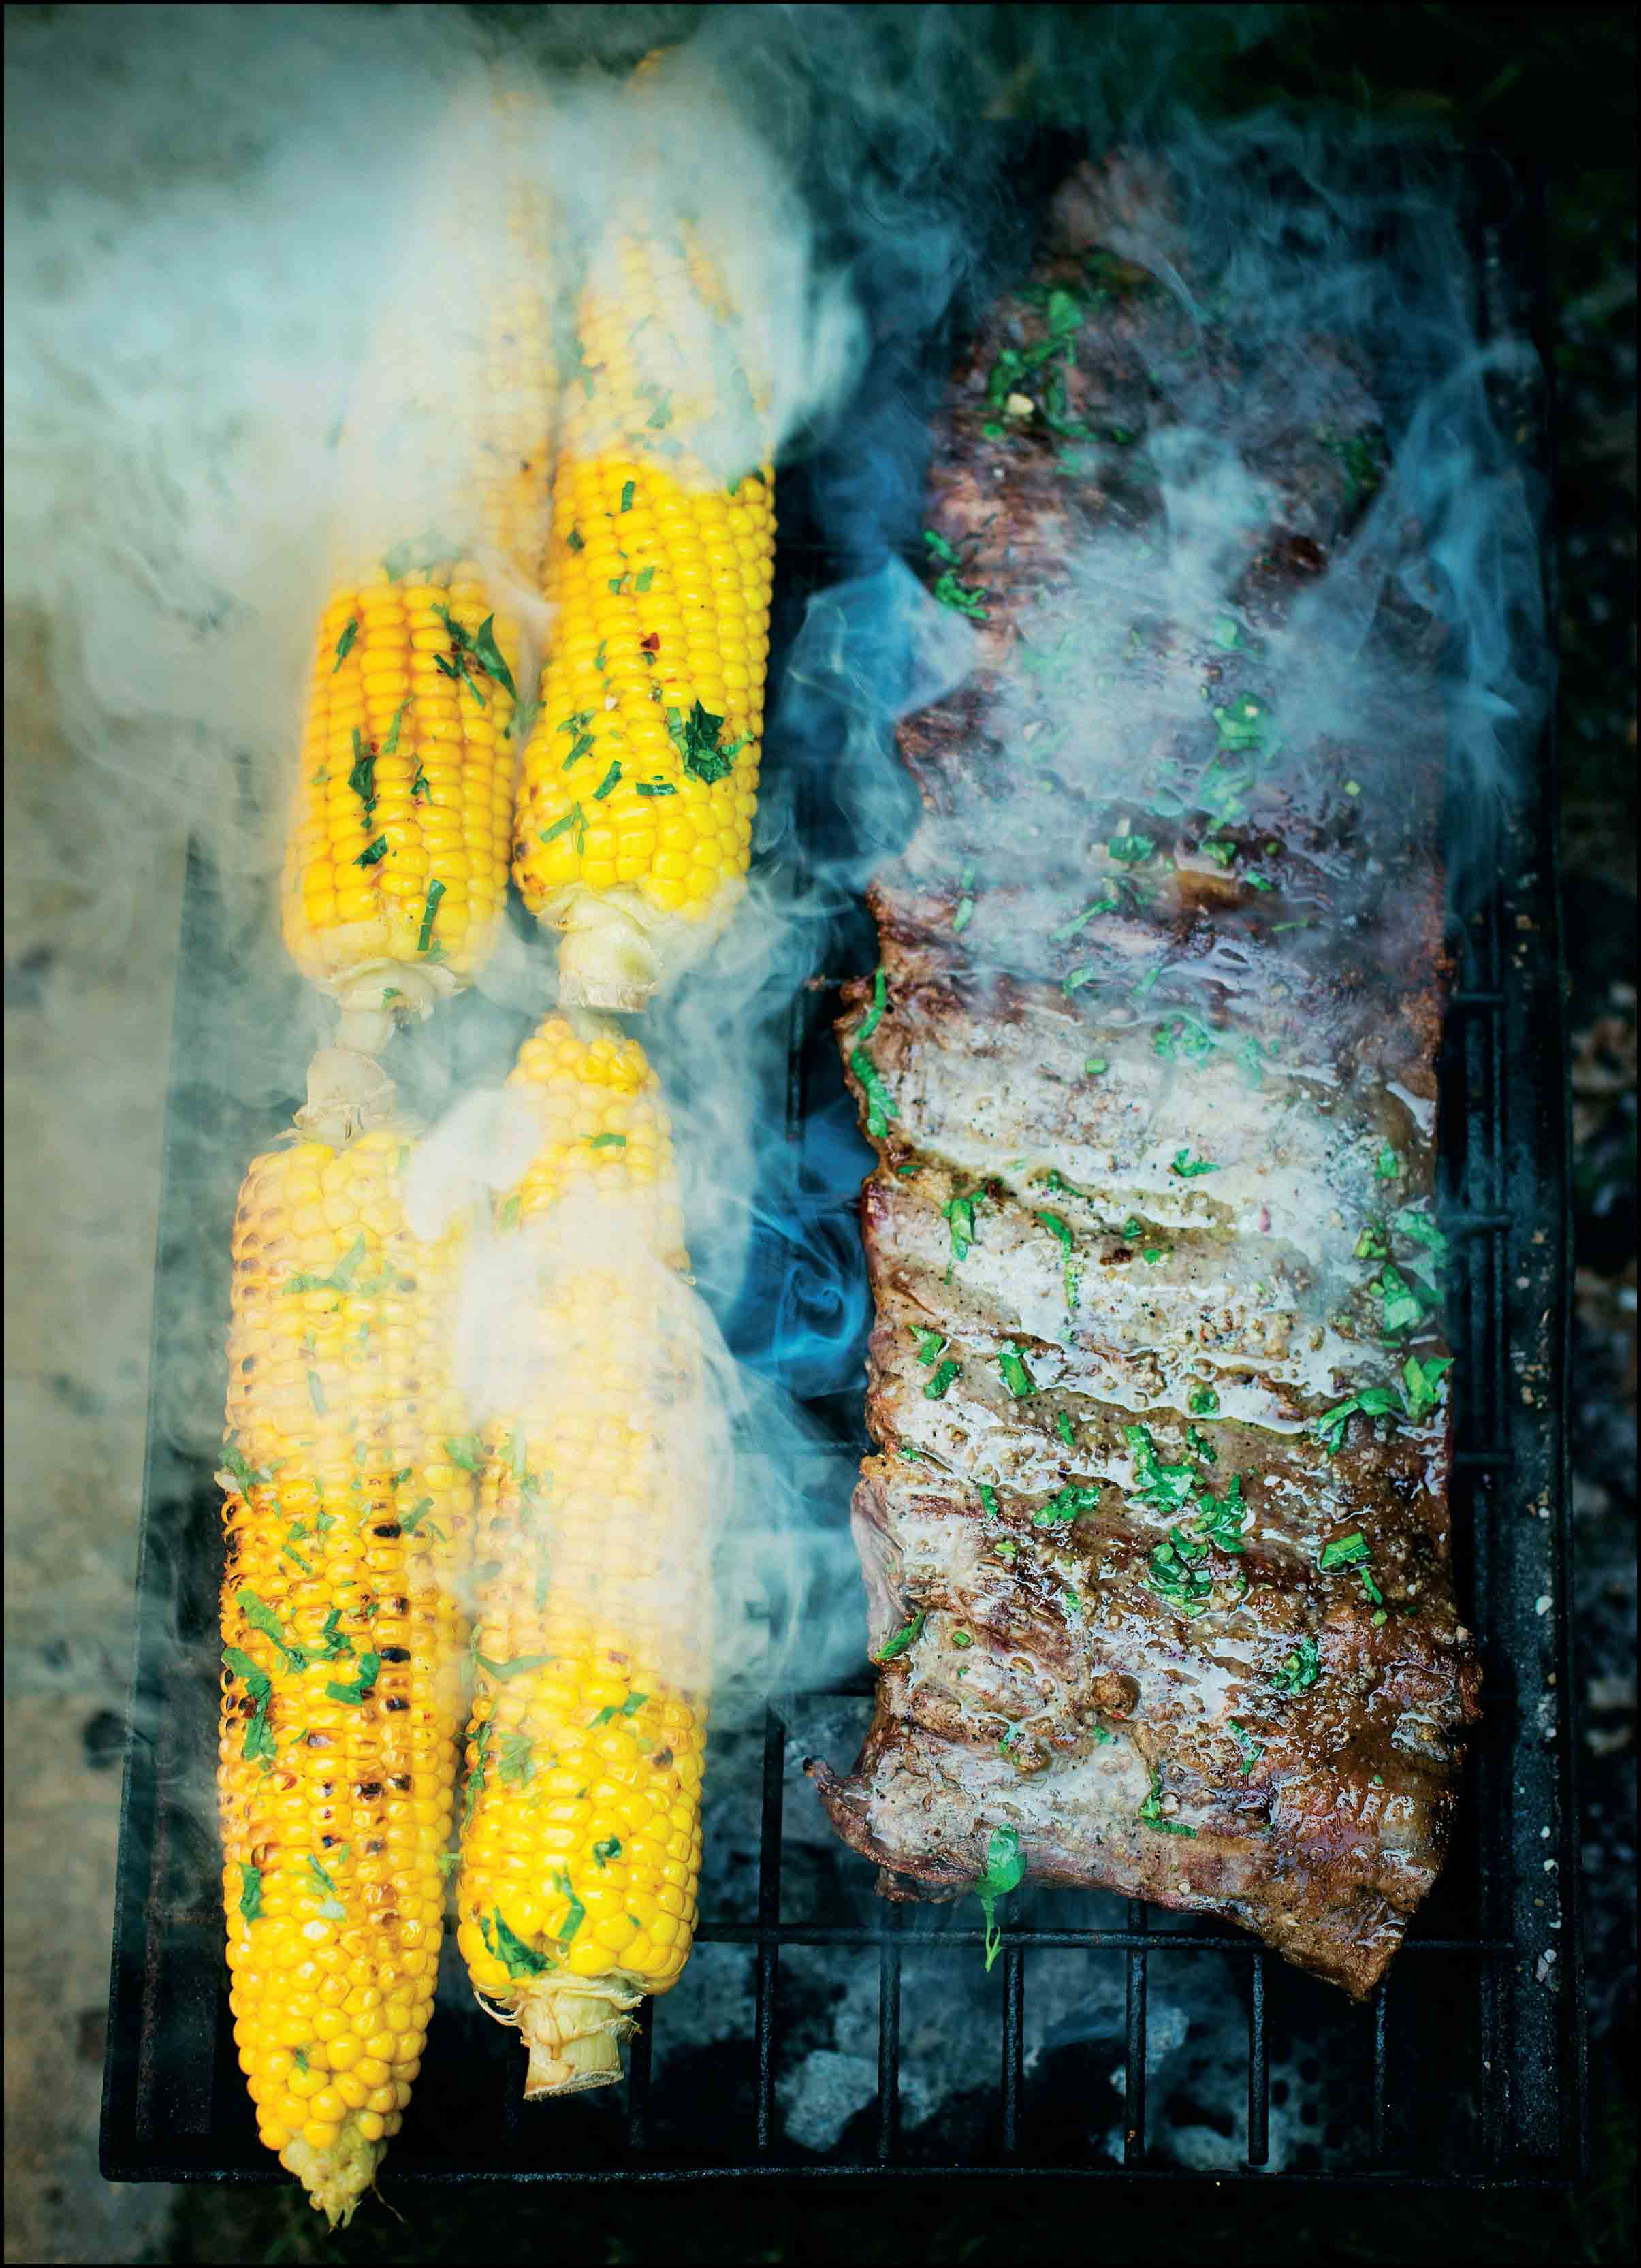 Corn on the cob with bavette steak and chimichurri